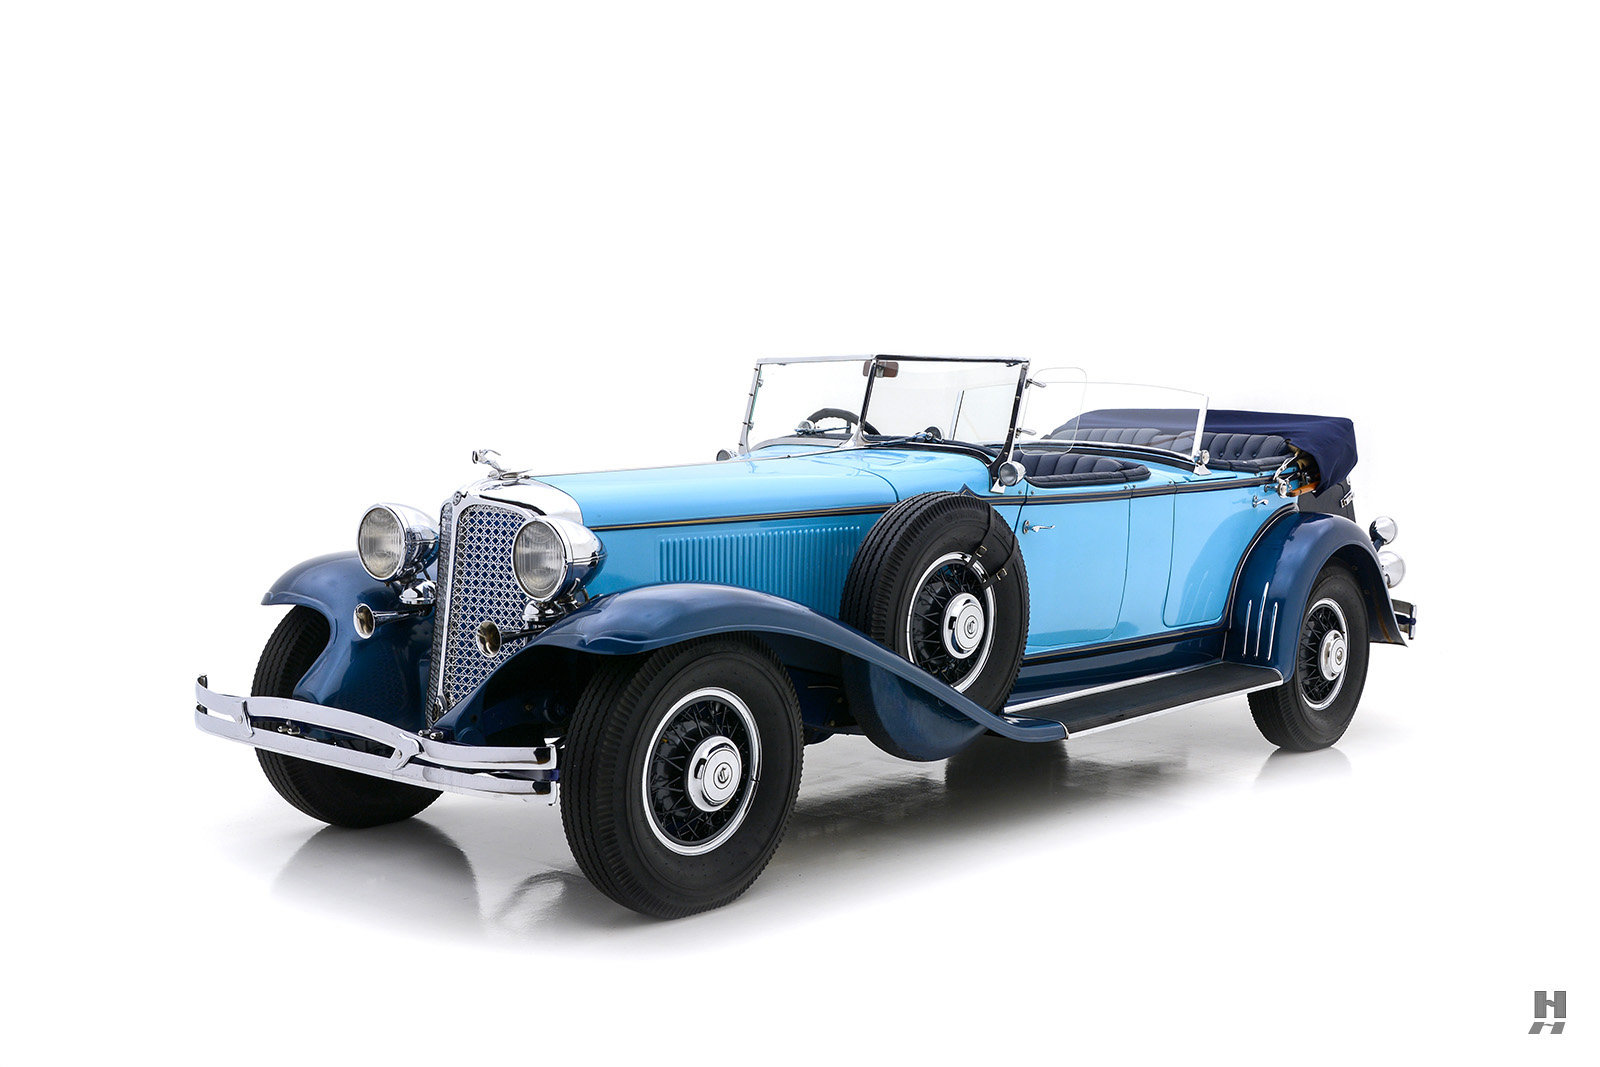 1931 CHRYSLER CG IMPERIAL DUAL COWL PHAETON For Sale (picture 1 of 6)